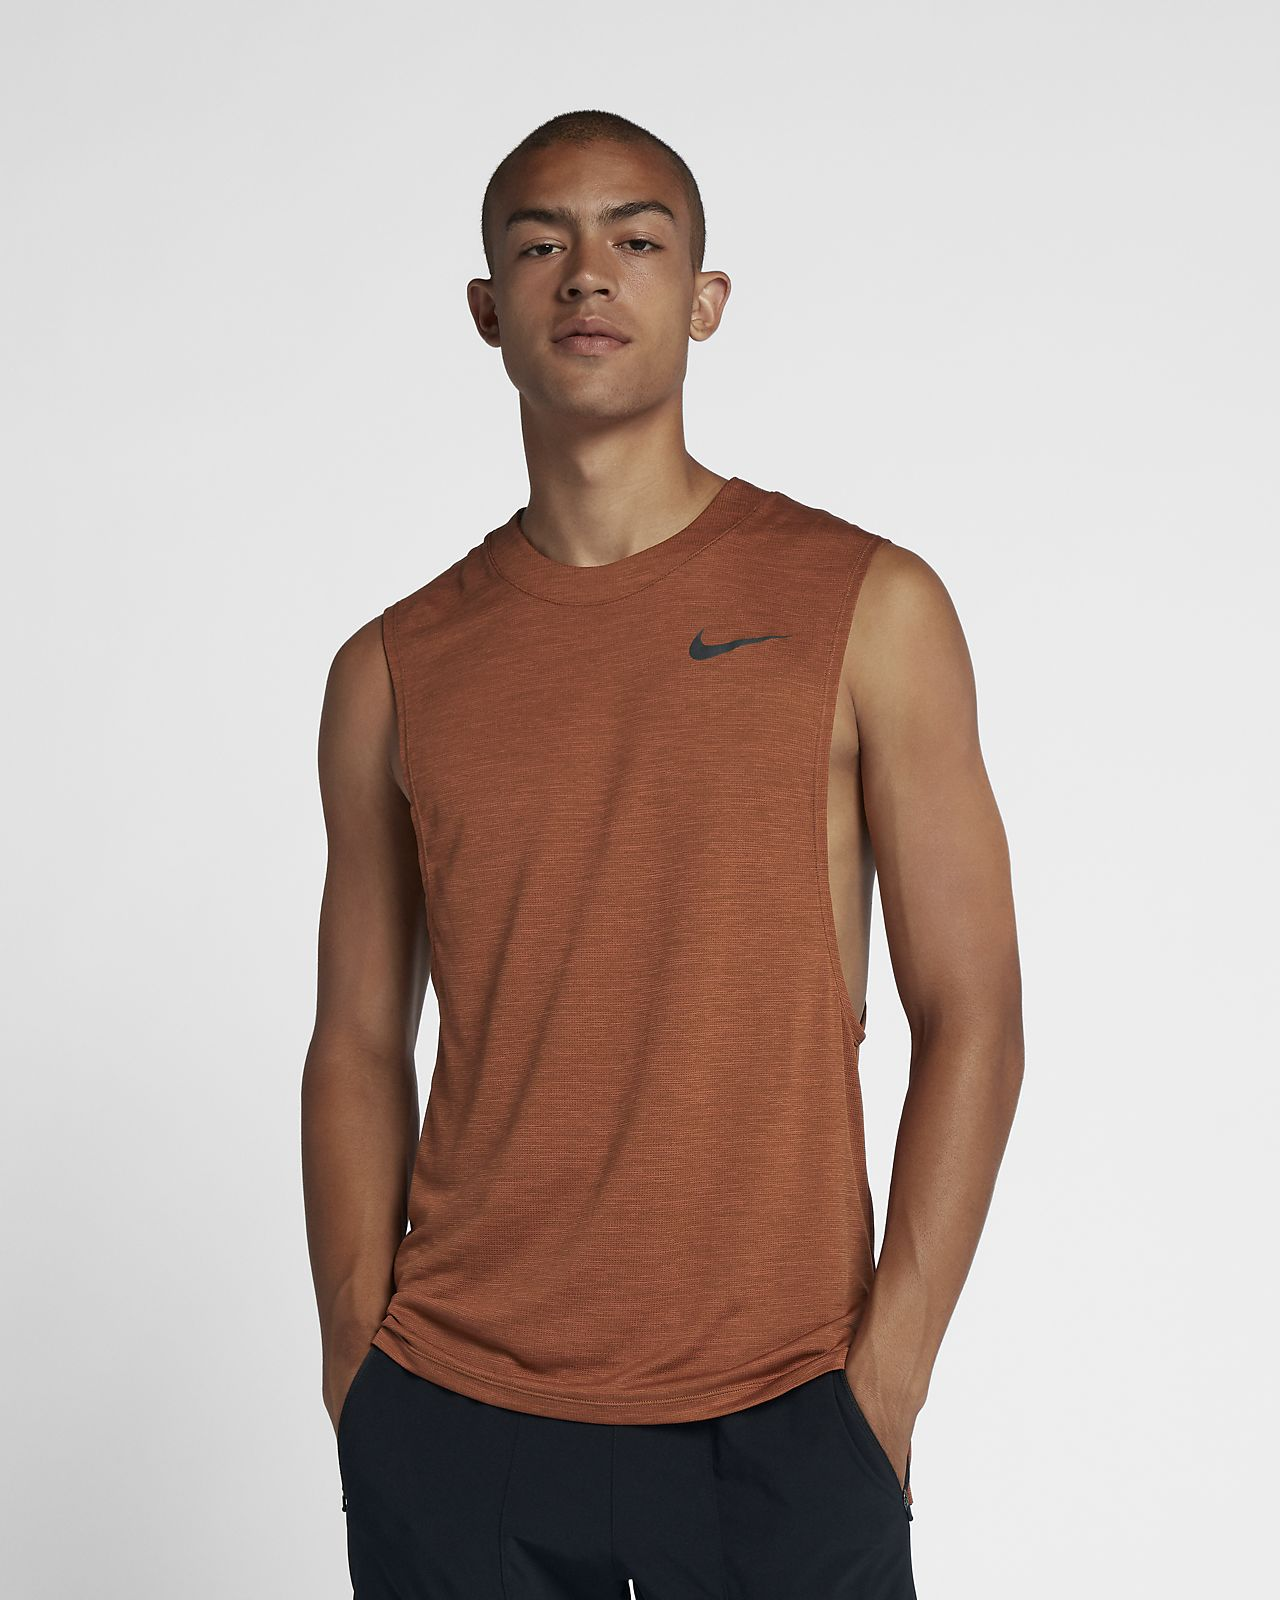 Nike Medalist Run Division Men's Sleeveless Running Top